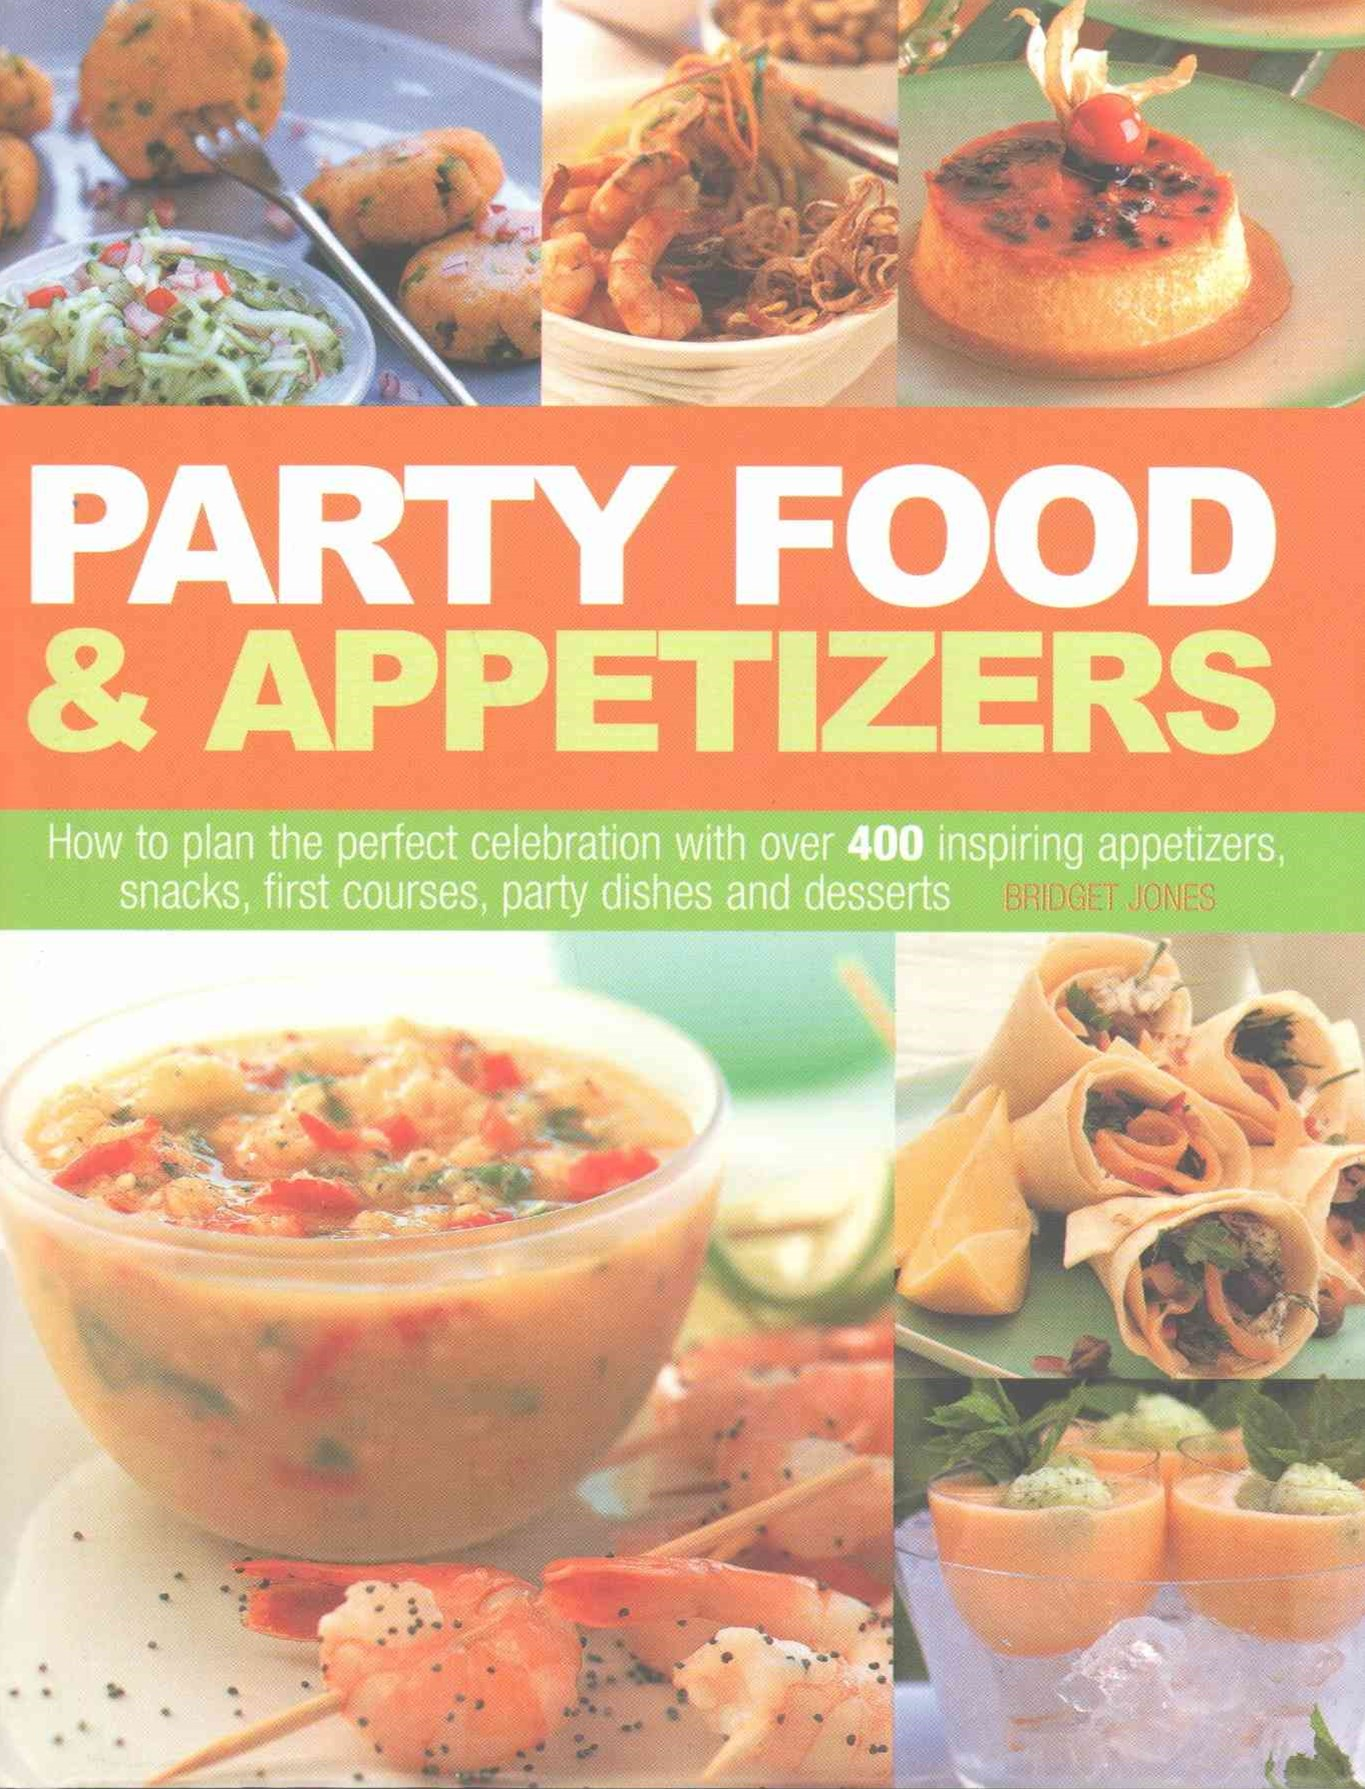 Party Food & Appetizers